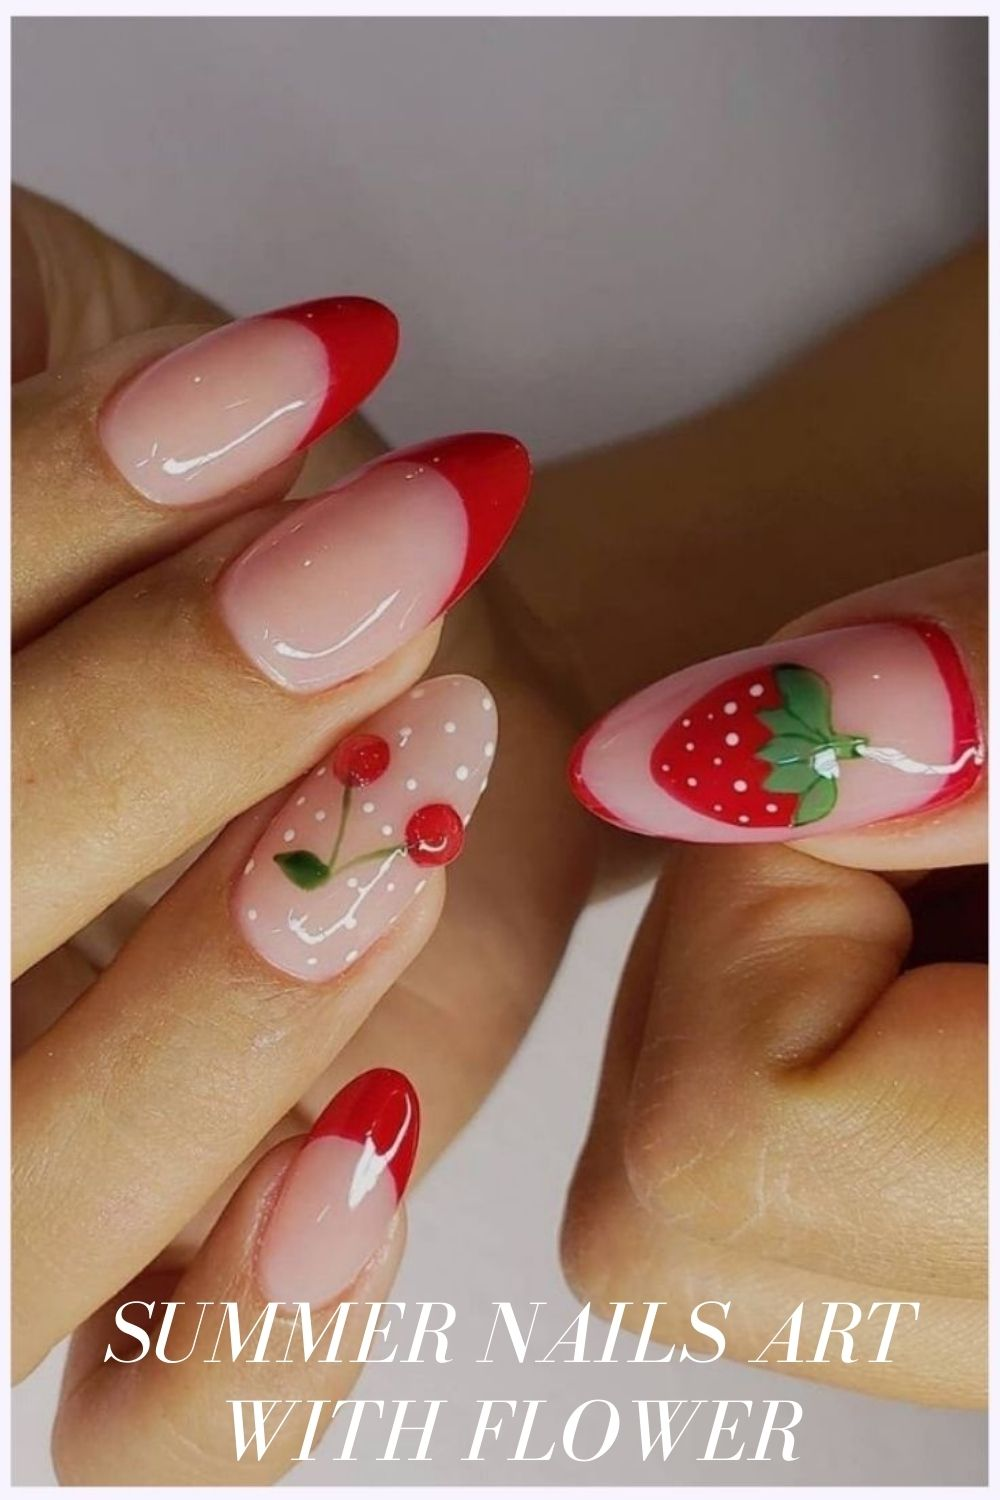 French red tip almond style nails art